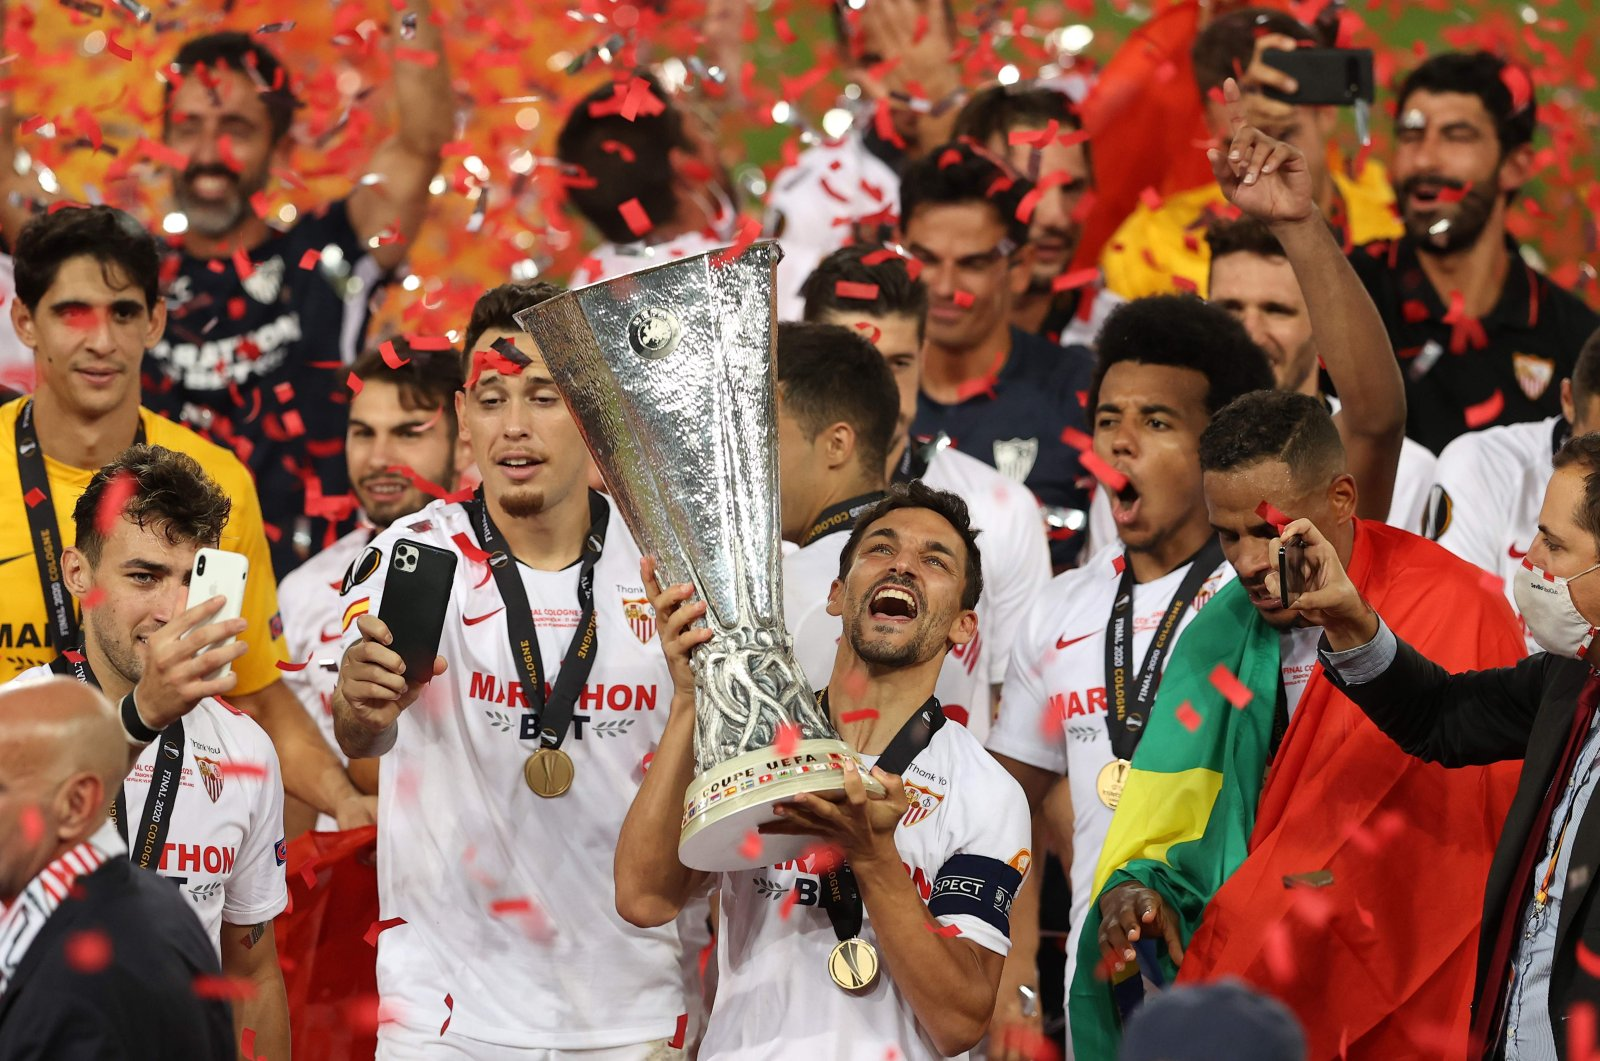 Sevilla's Spanish midfielder Jesus Navas holds the trophy as Sevilla's players celebrate  after winning the UEFA Europa League final football match Sevilla v Inter Milan on August 21, 2020, in Cologne, western Germany. (AFP Photo)